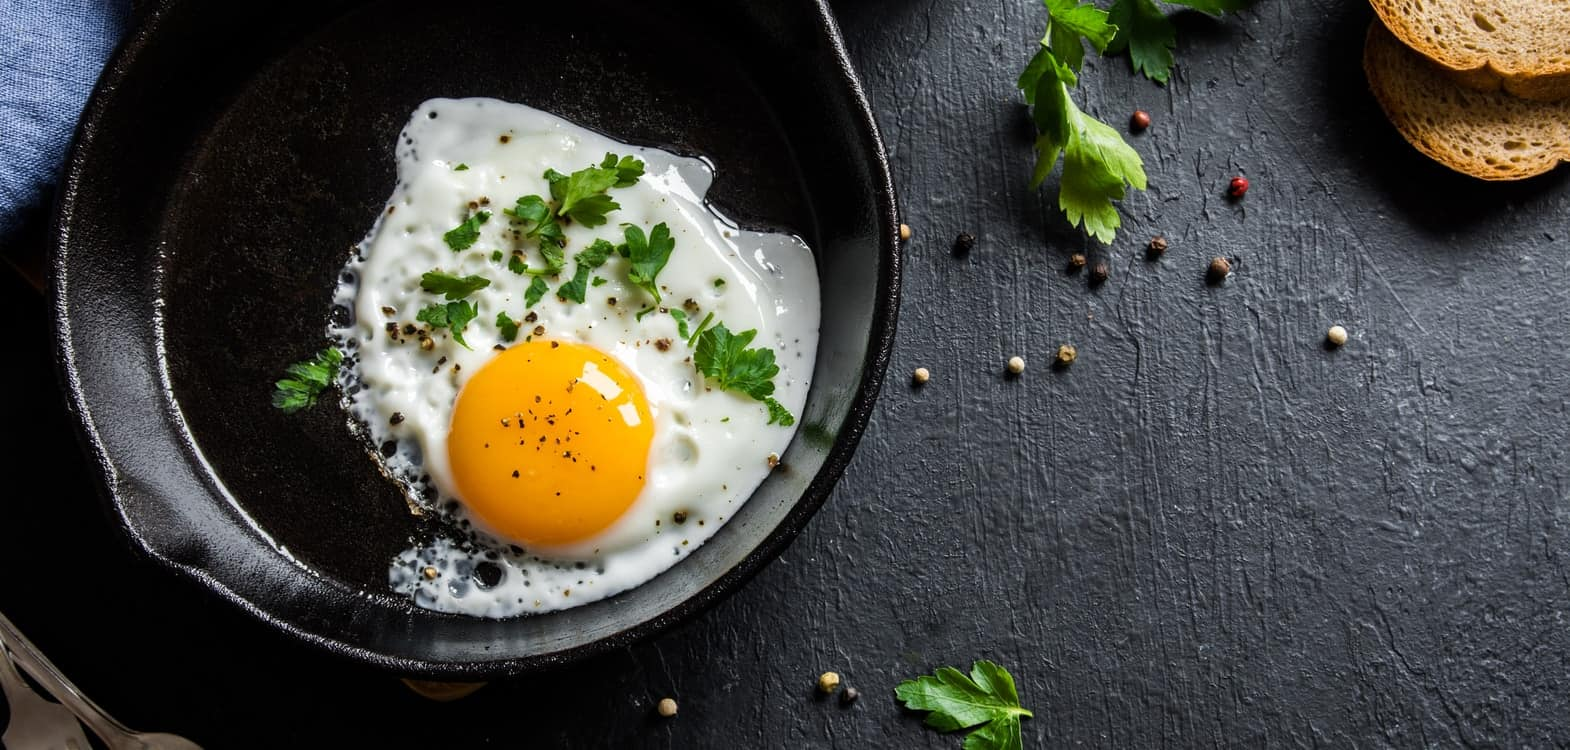 Fried egg in a black cast iron frying pan with fresh herbs sprinkled over the egg, breakfast at Firhall Bed & Breakfast